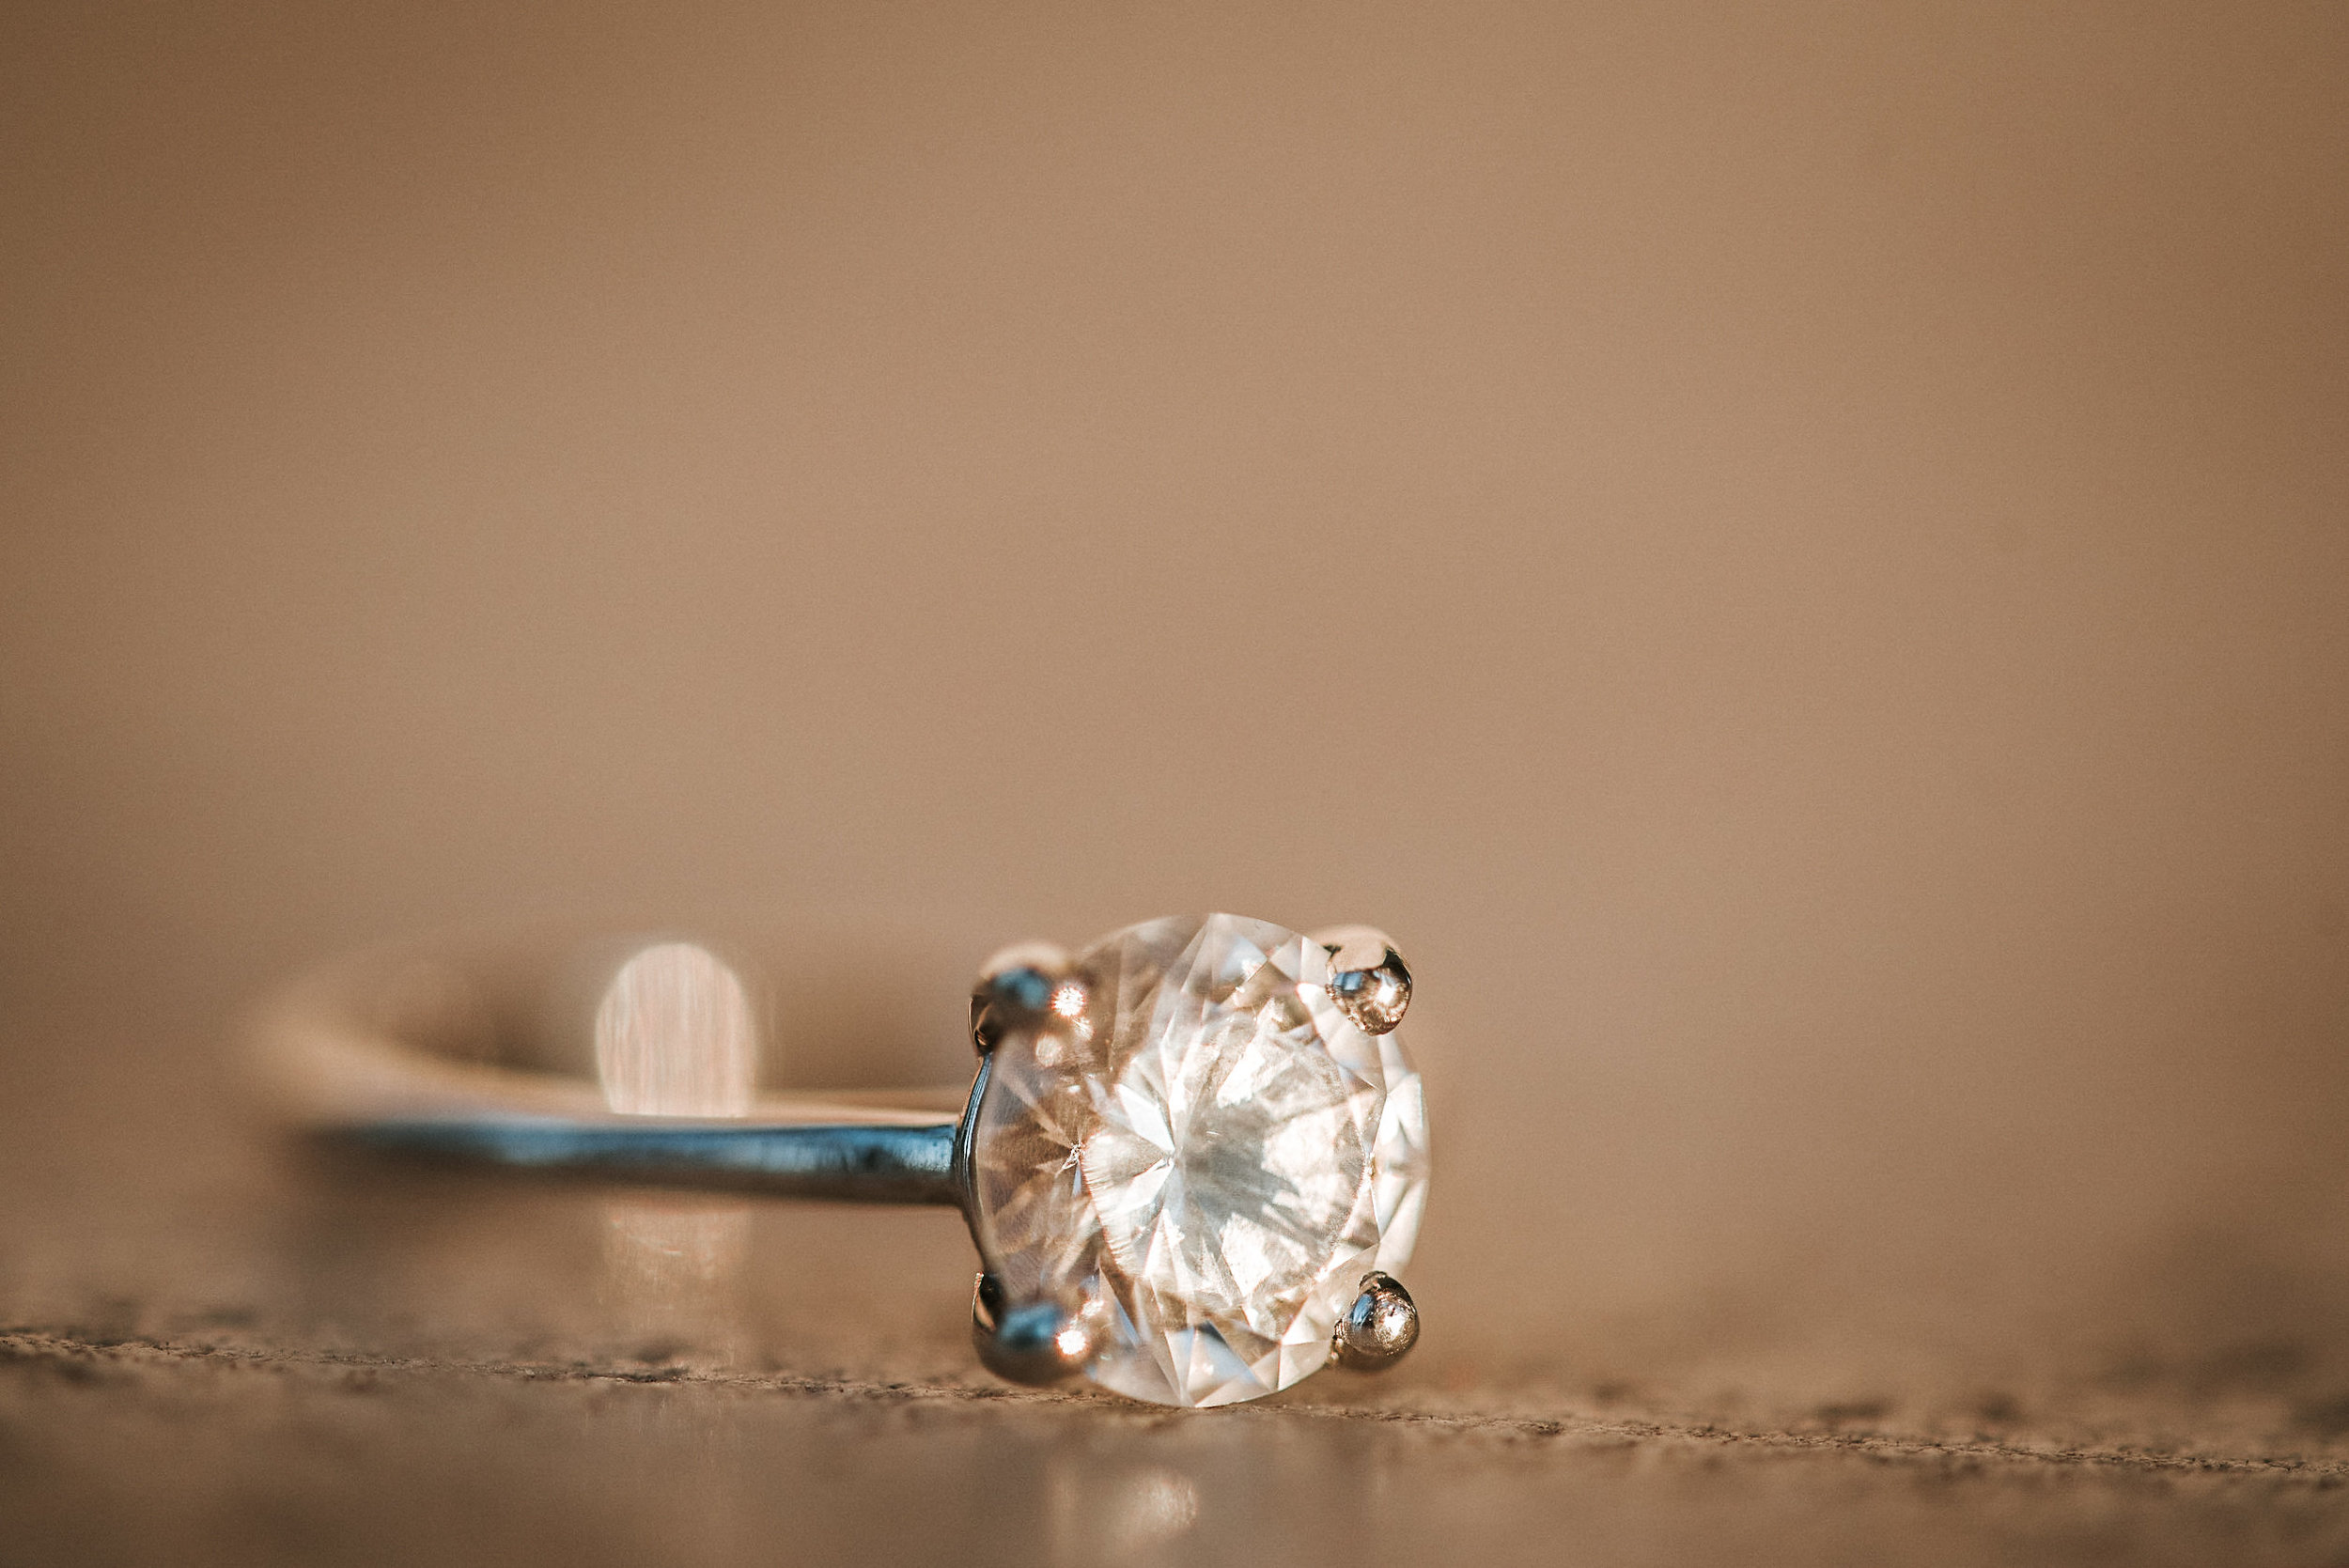 Engagement ring on marble floor